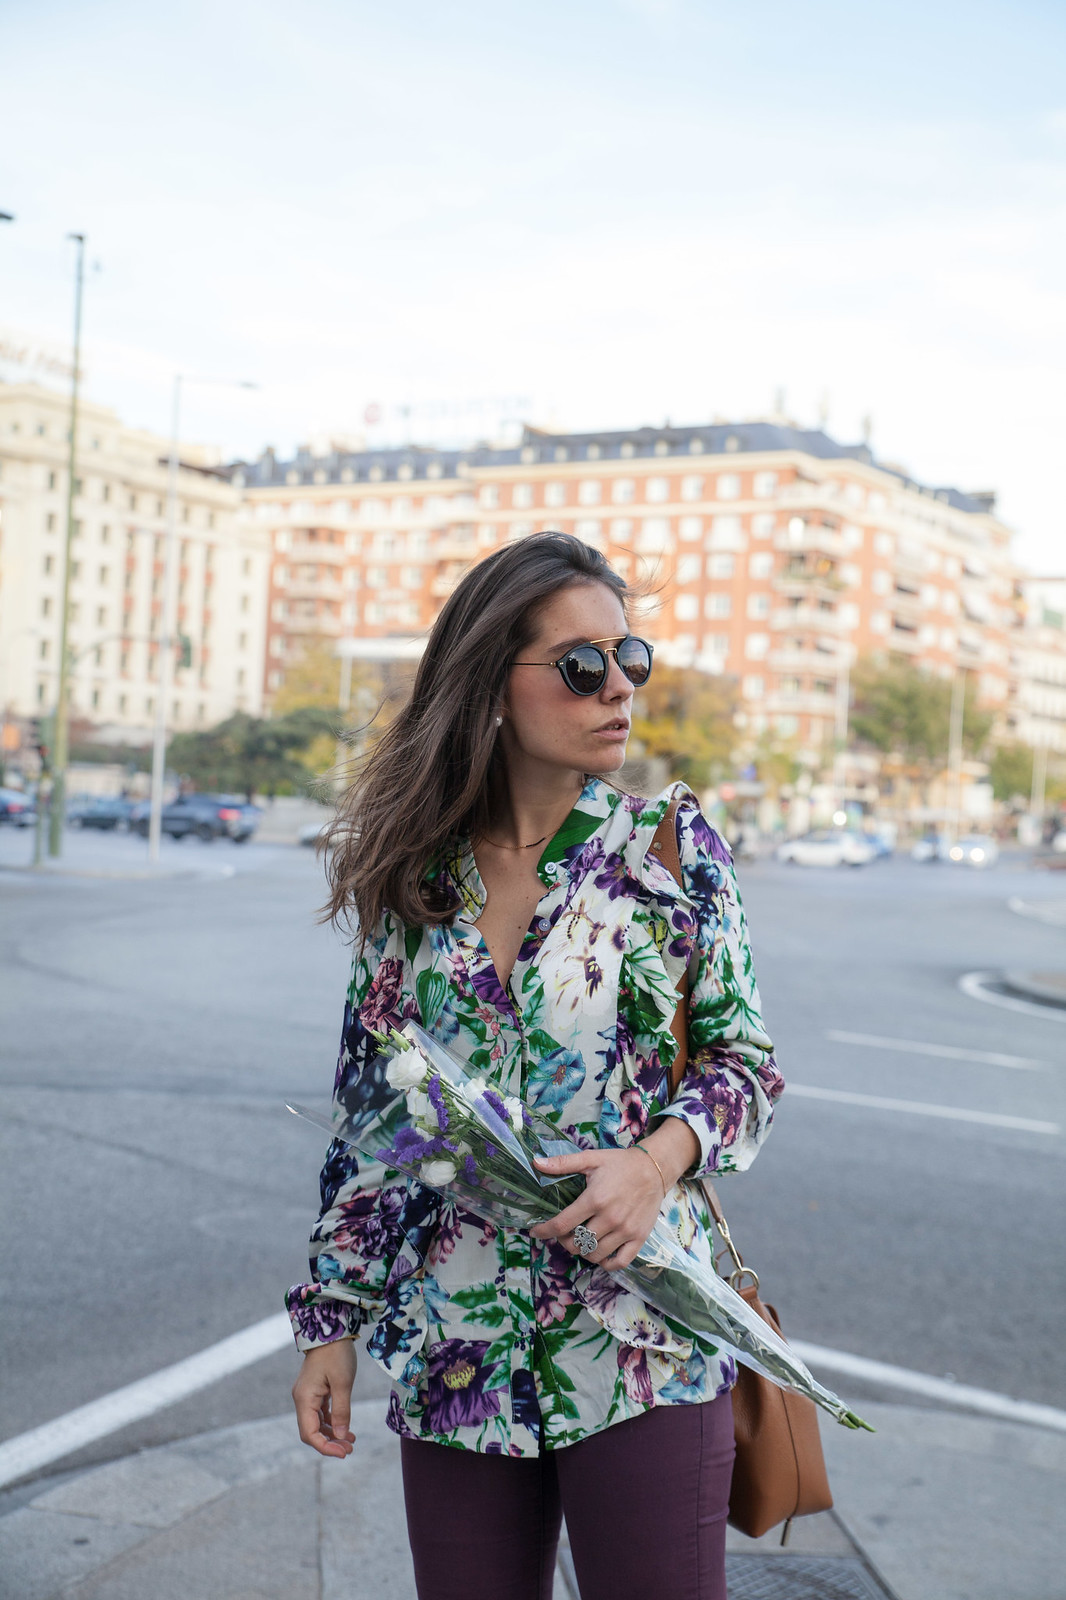 stop mitos mujeres imparables theguestgirl laura santolaria influencer spain madrid barcelona emprendedora loavies look